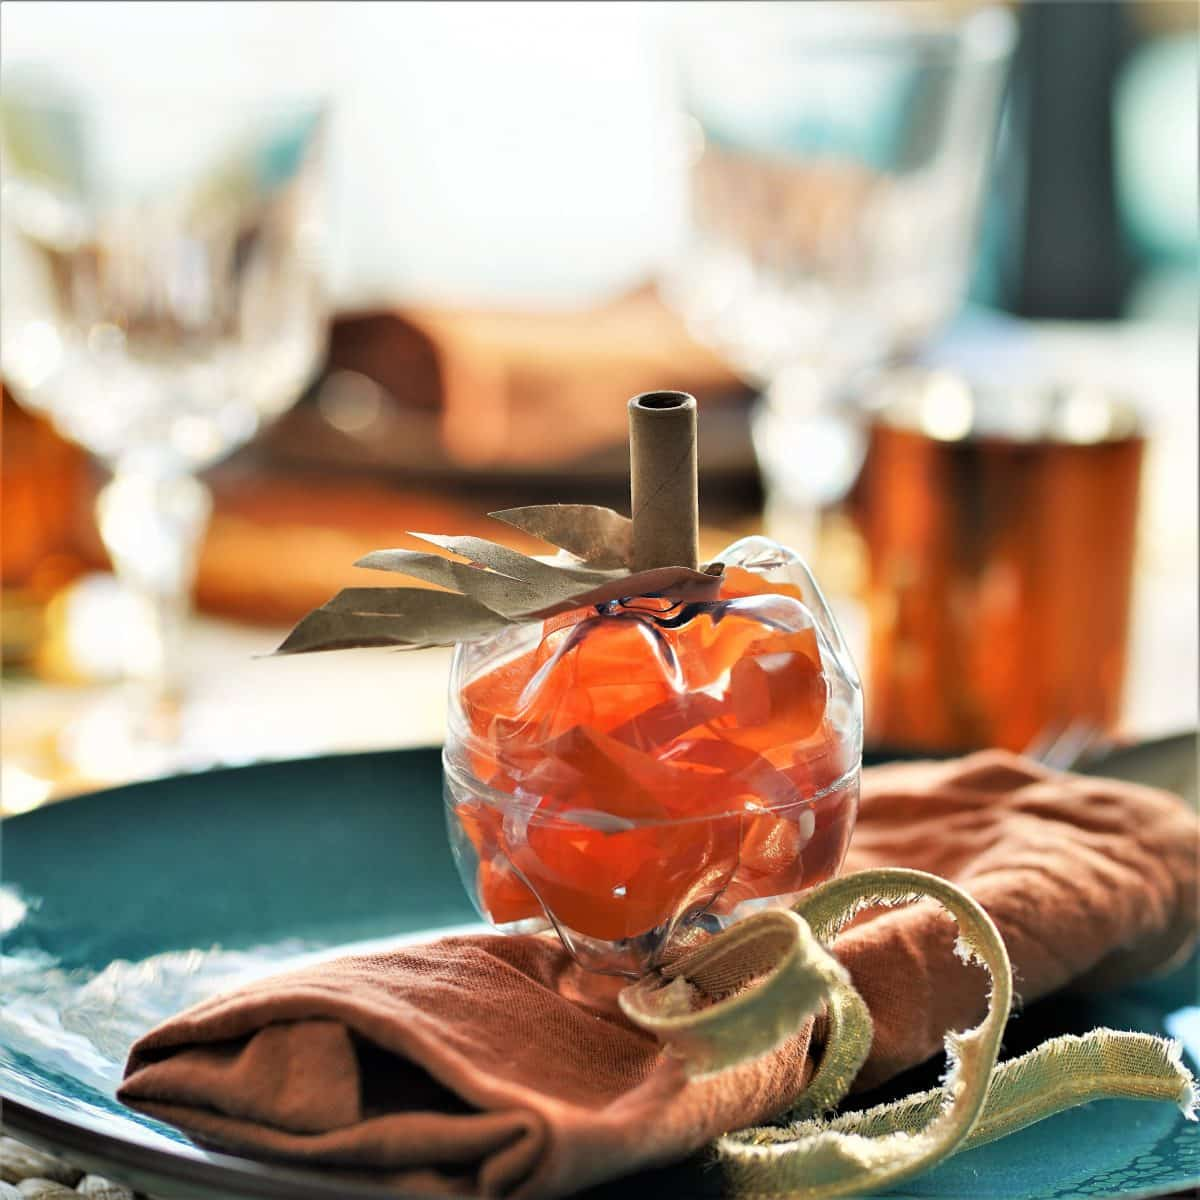 DIY Pumpkins: Reuse Plastic Bottles for Fall Decor